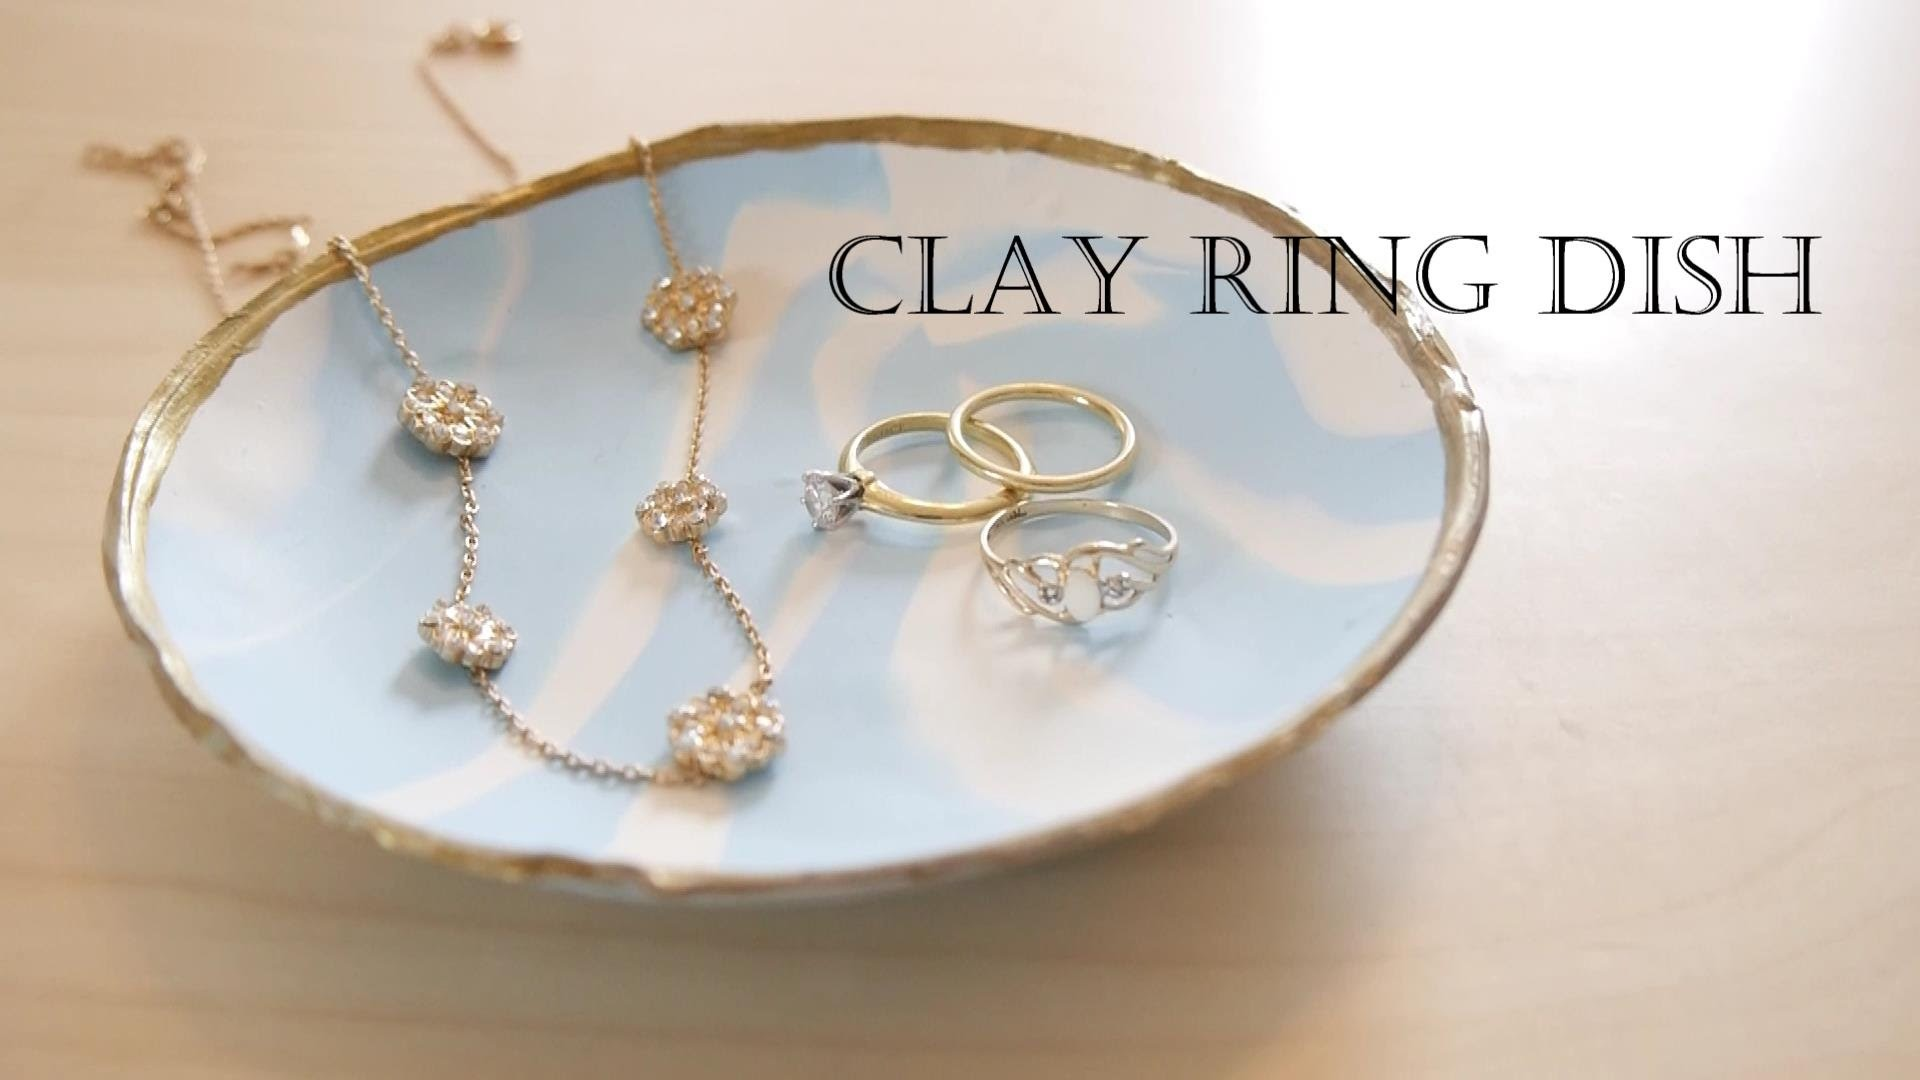 How to make a ring dish out of clay (easy!)